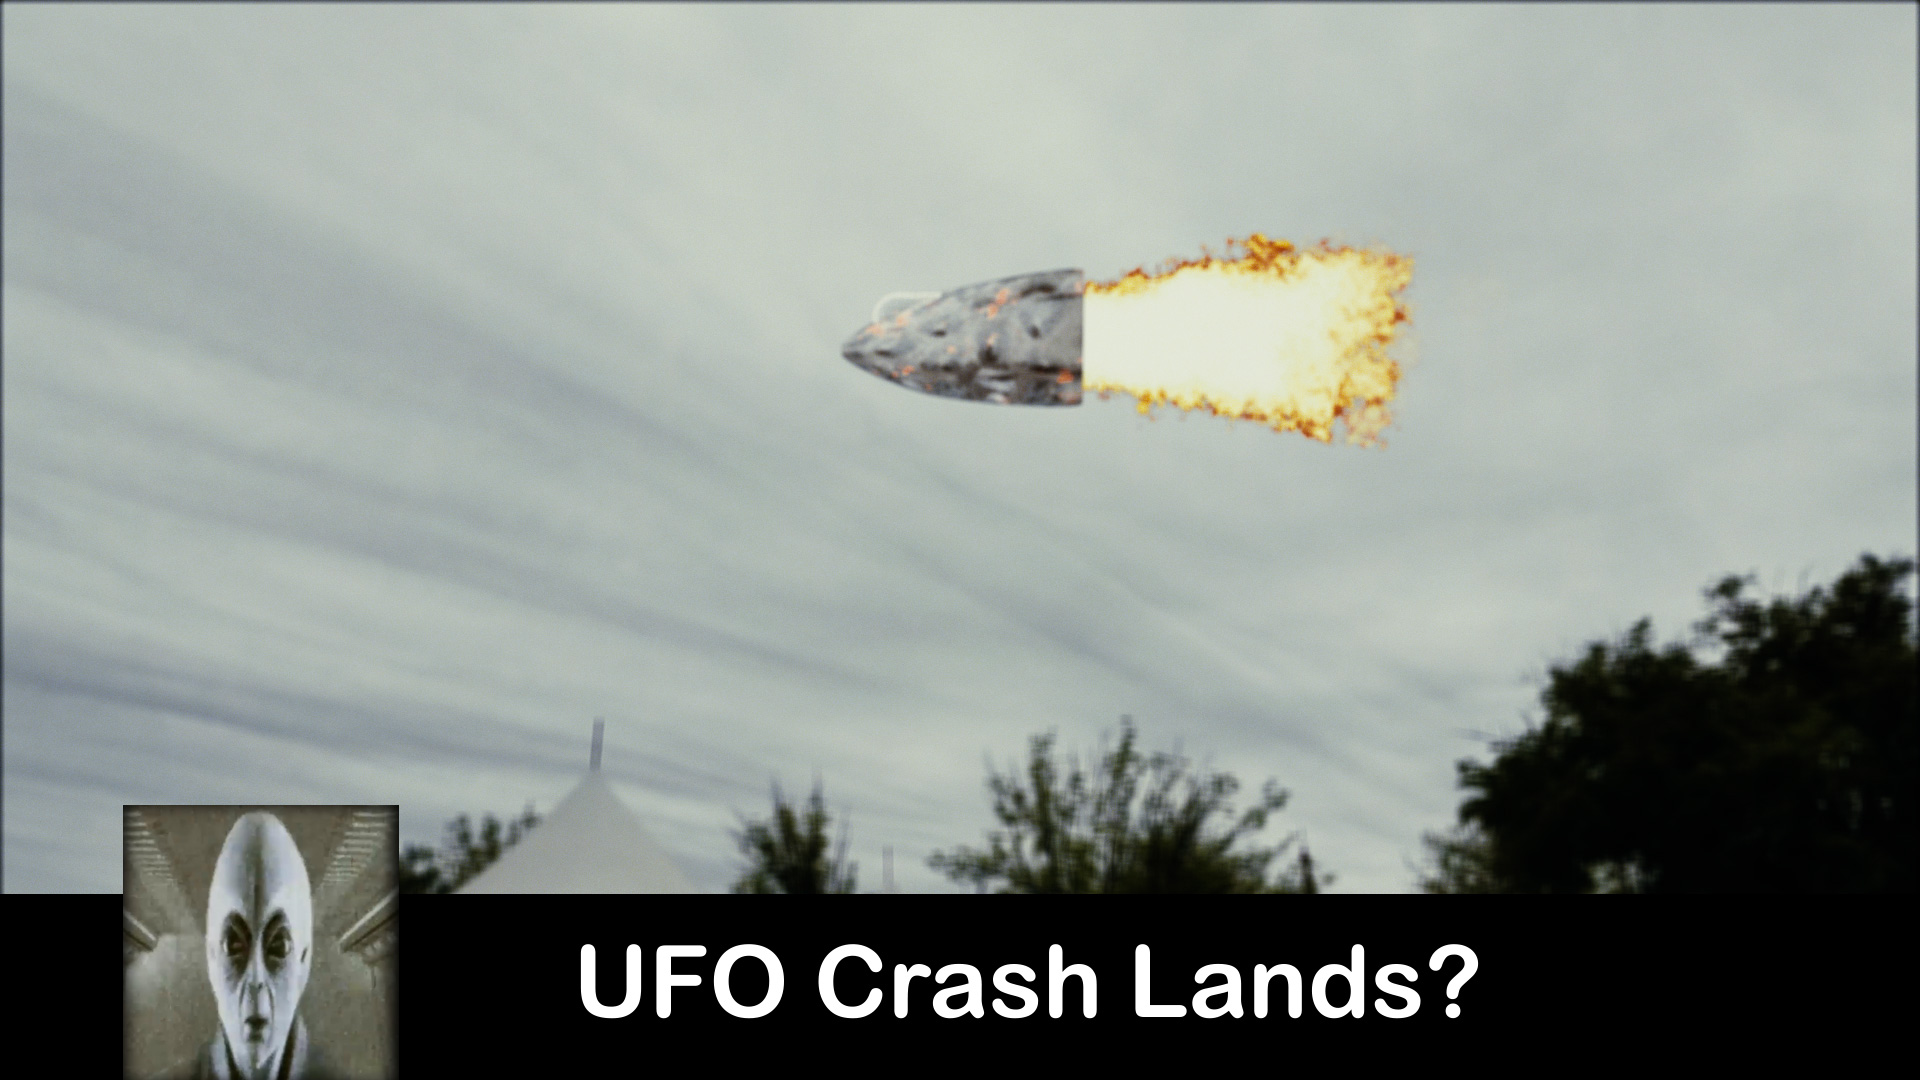 UFO Crash Lands